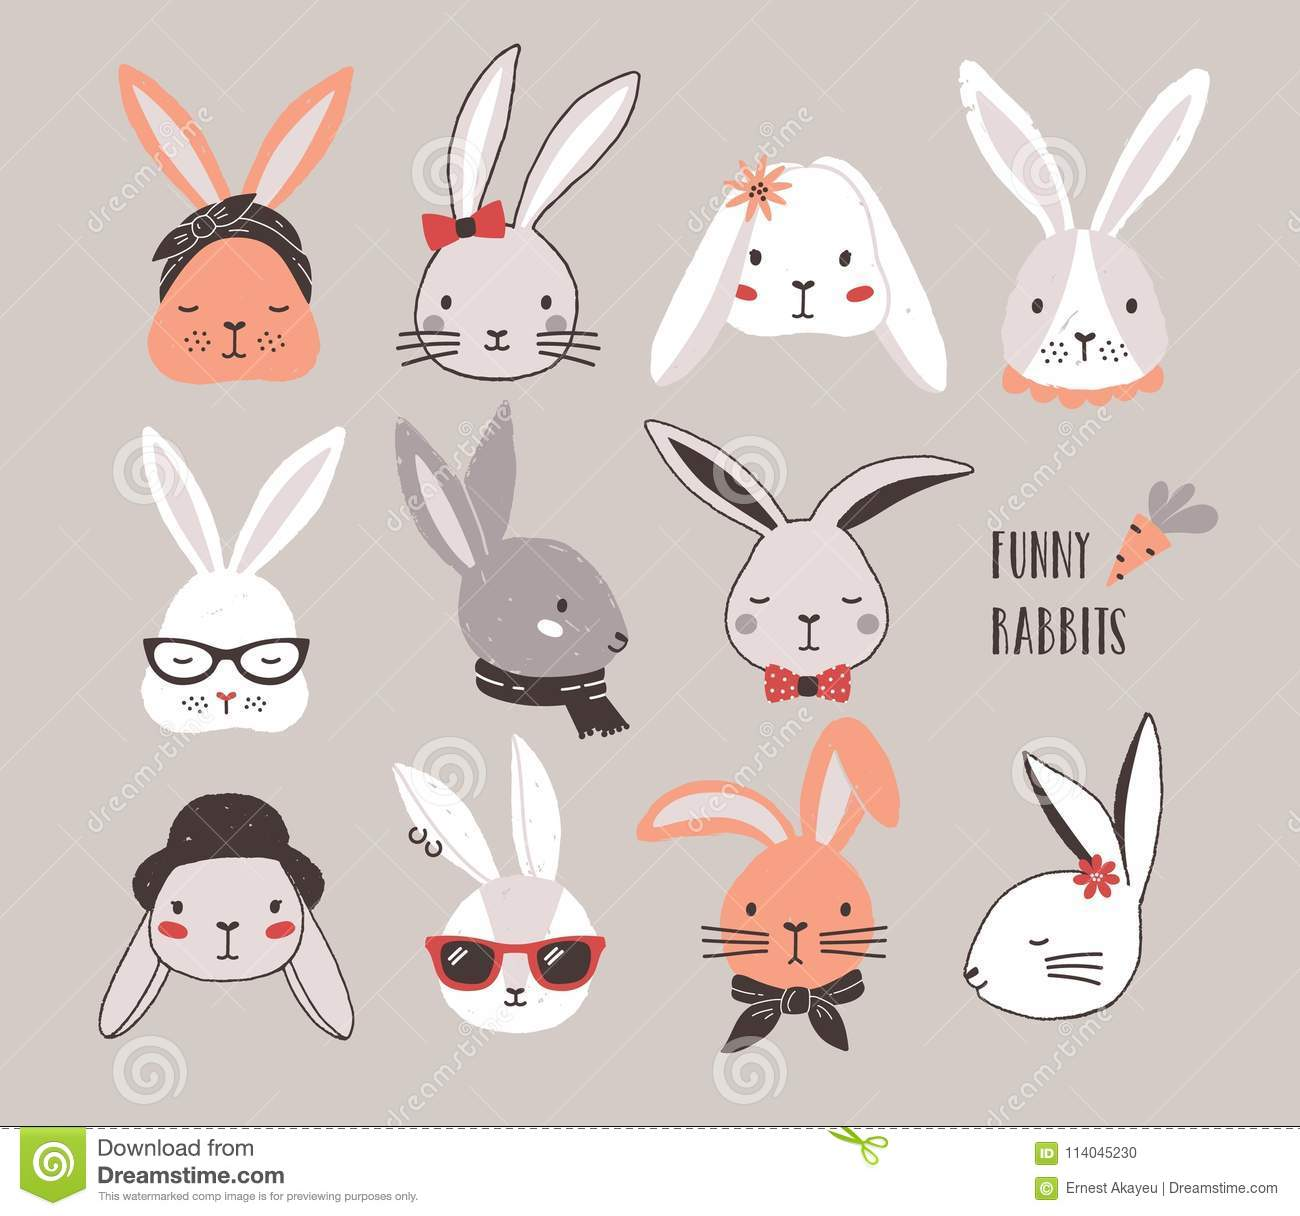 Collection of funny bunnies. Set of cute rabbits or hares wearing glasses, sunglasses, hats and scarves. Bundle of heads